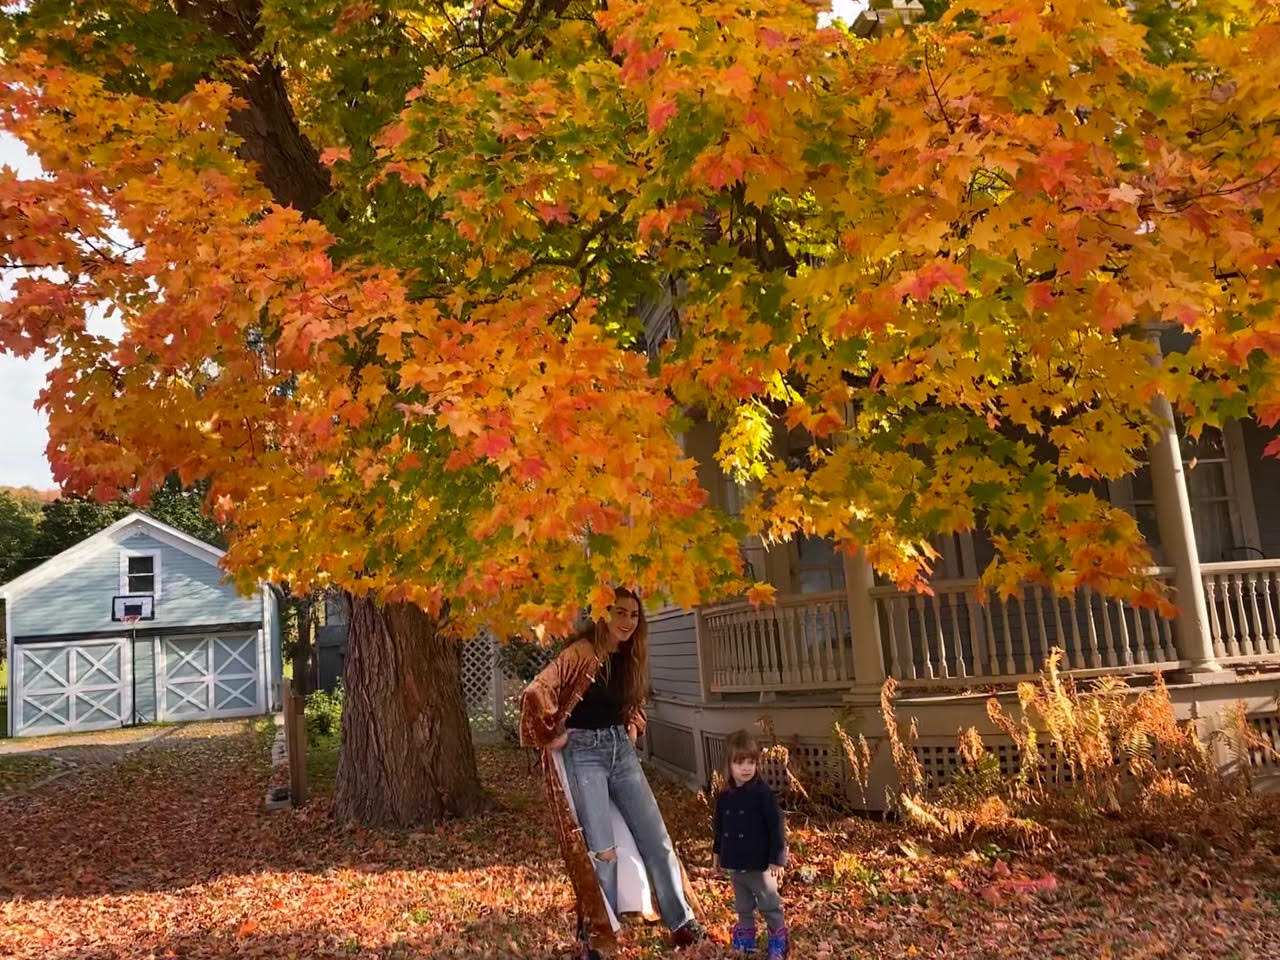 Yali supporter, Lola, playing with her daughter in the fall foliage